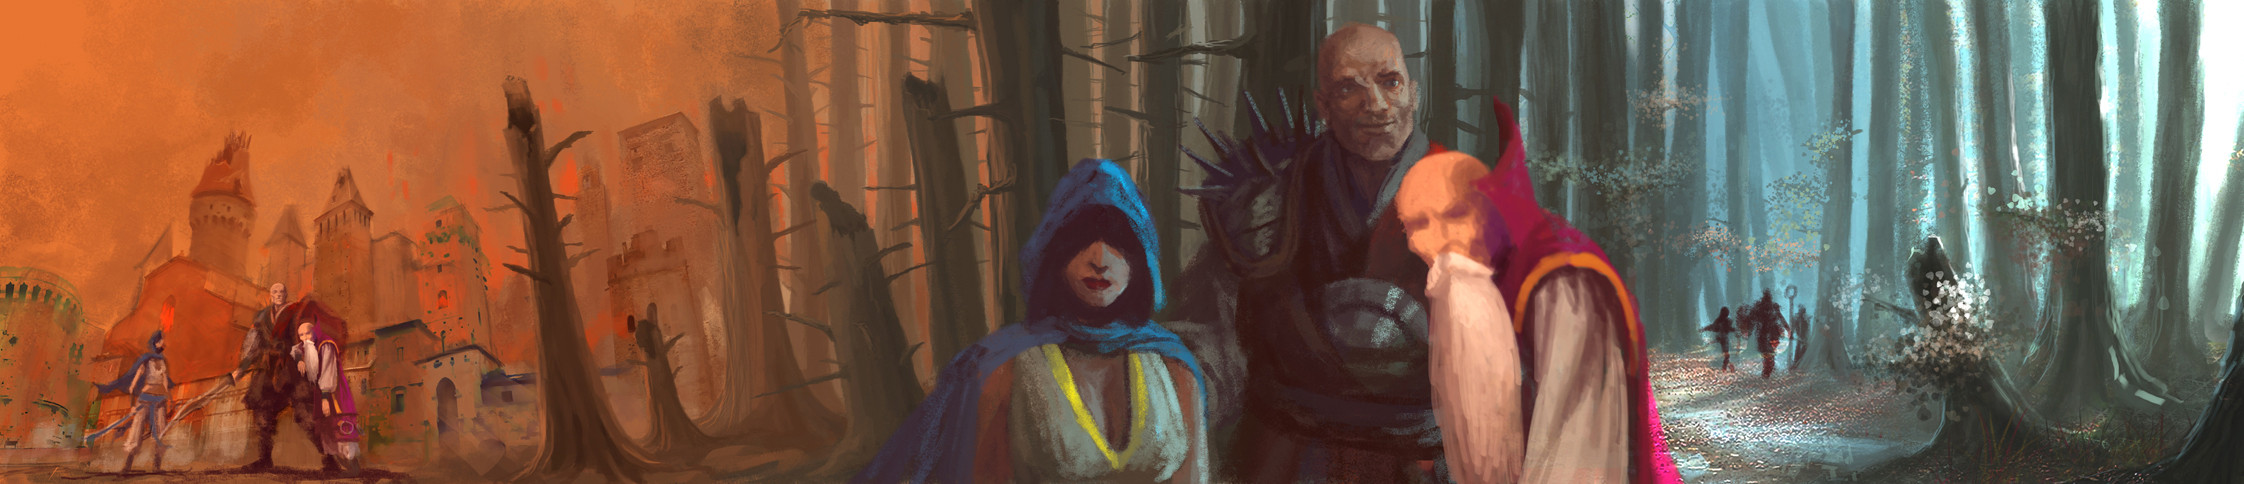 Environment digital painting for the game Crimson Alliance. (Characters are by another artist)